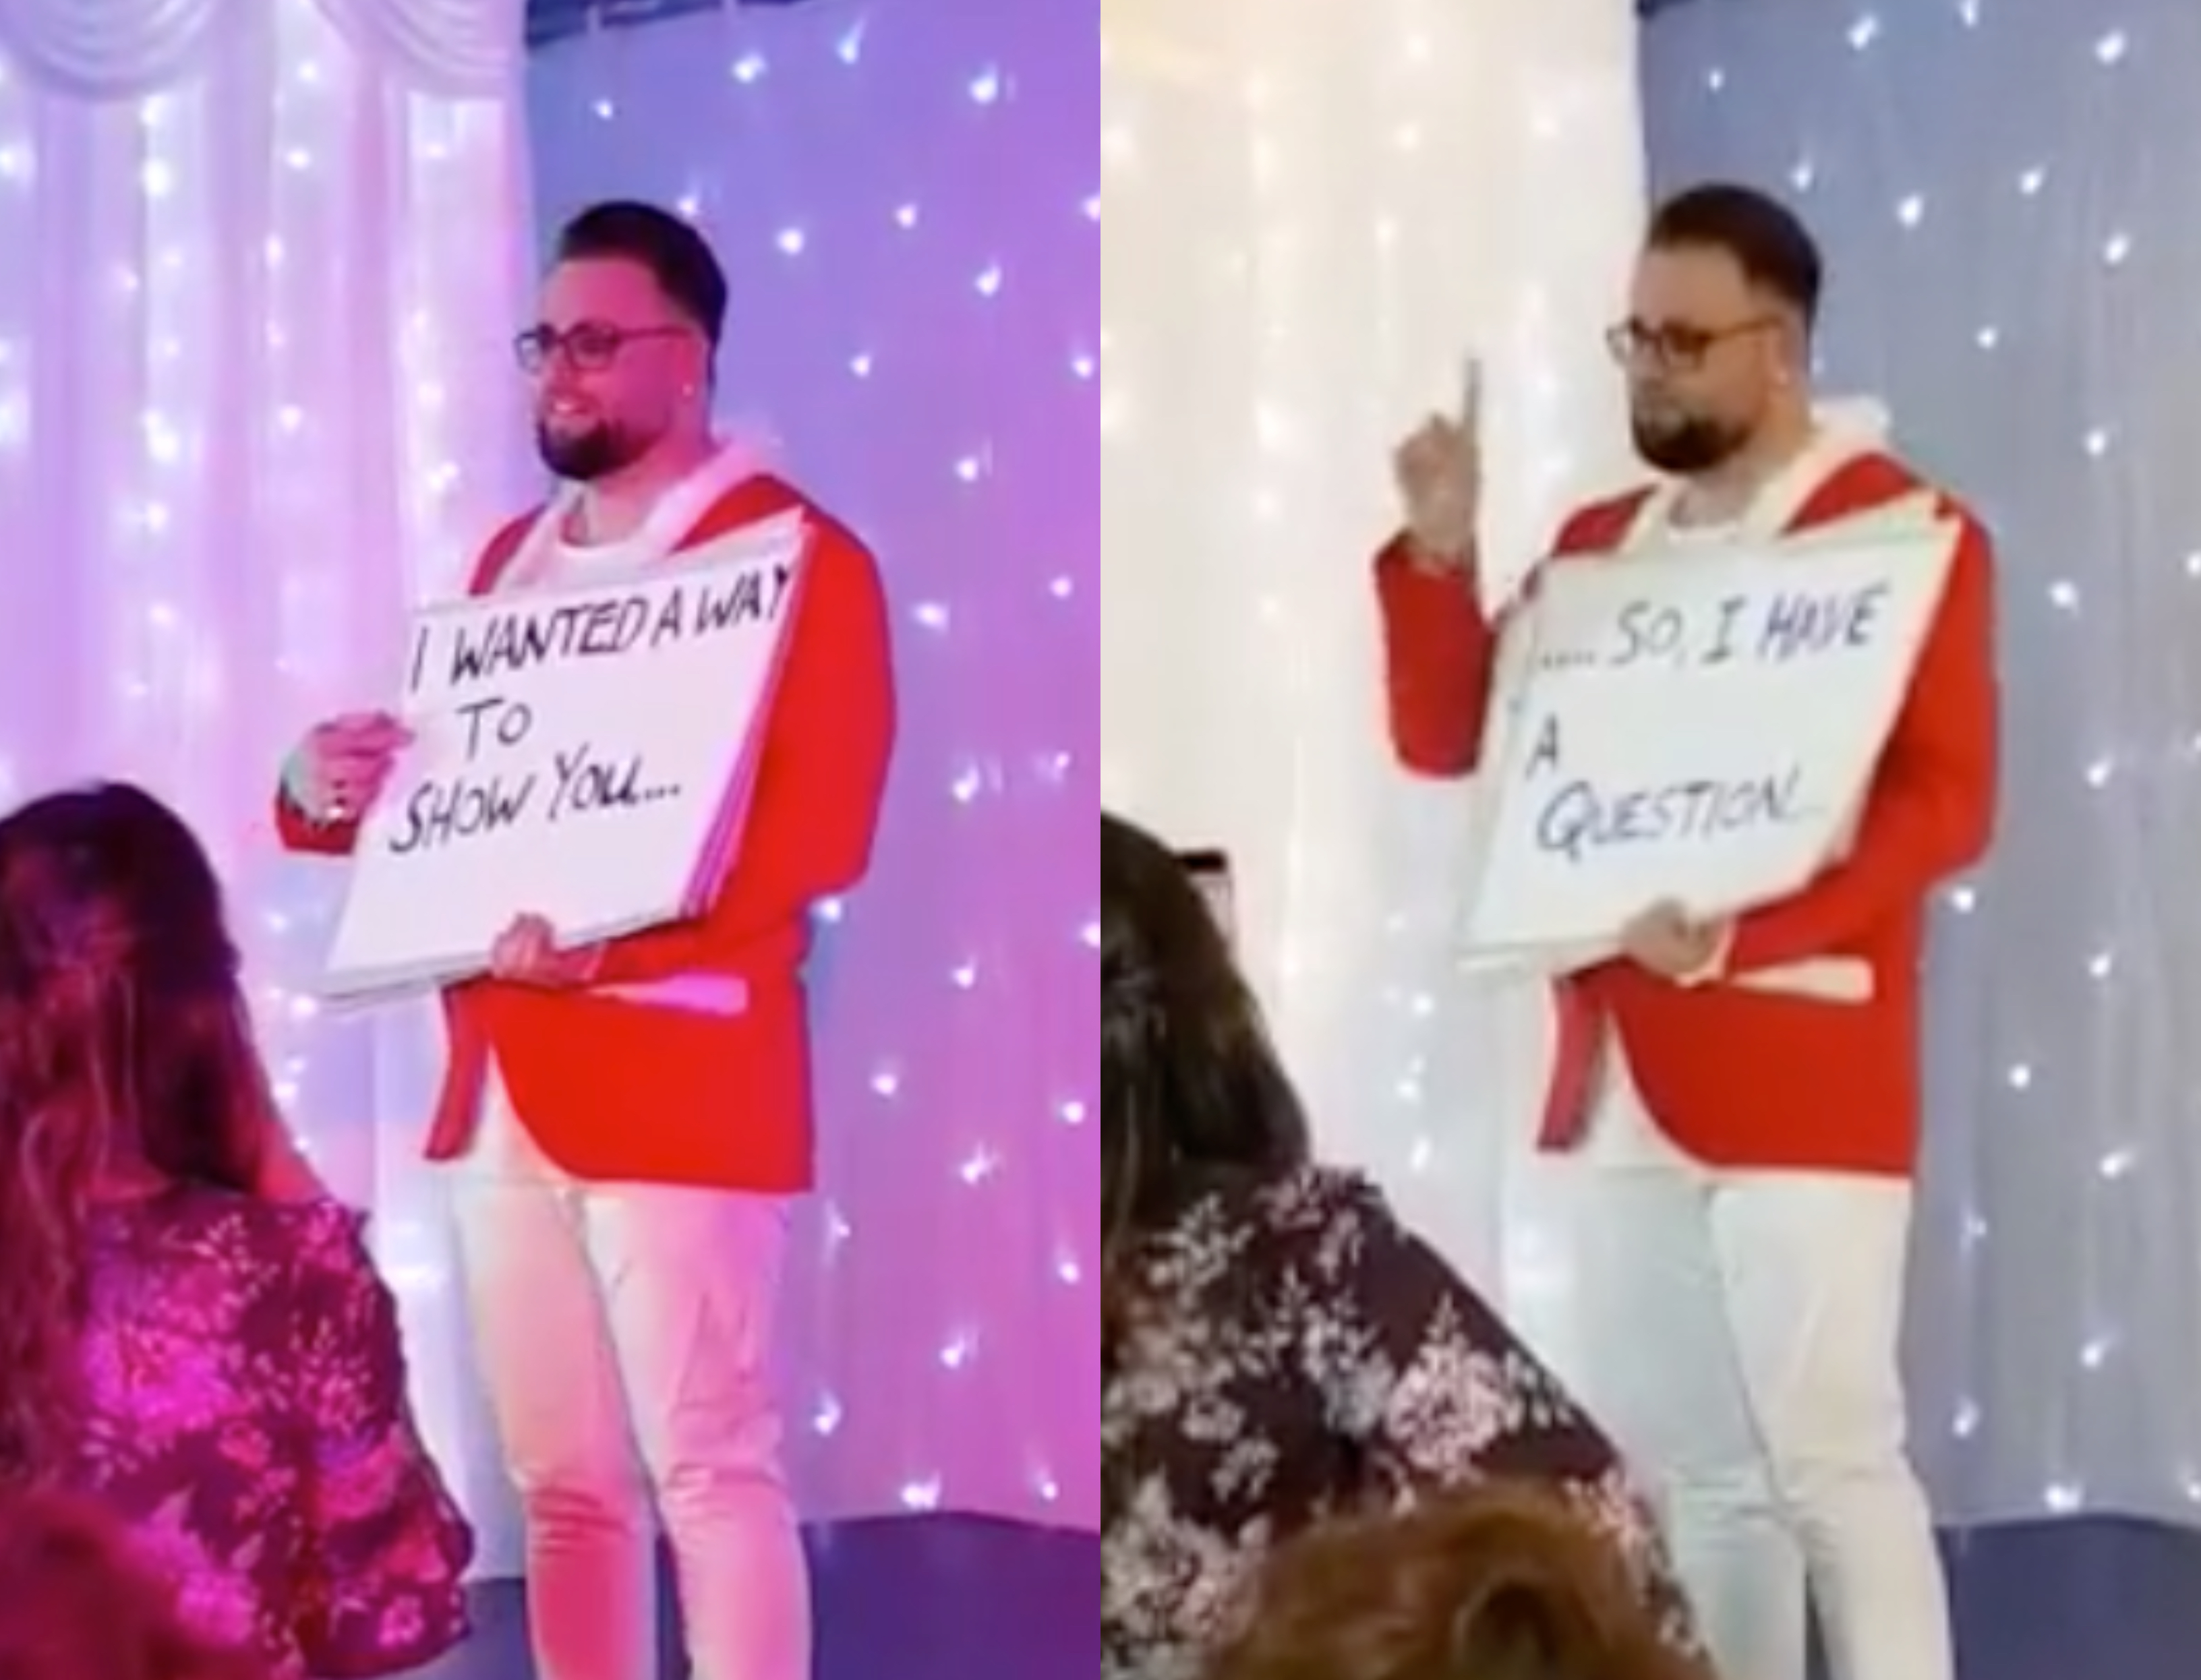 CJ Ewens proposed to his partner Christopher Nicoll in the style of the film Love Actually. Cry reacts only. (Screen captures via Facebook)